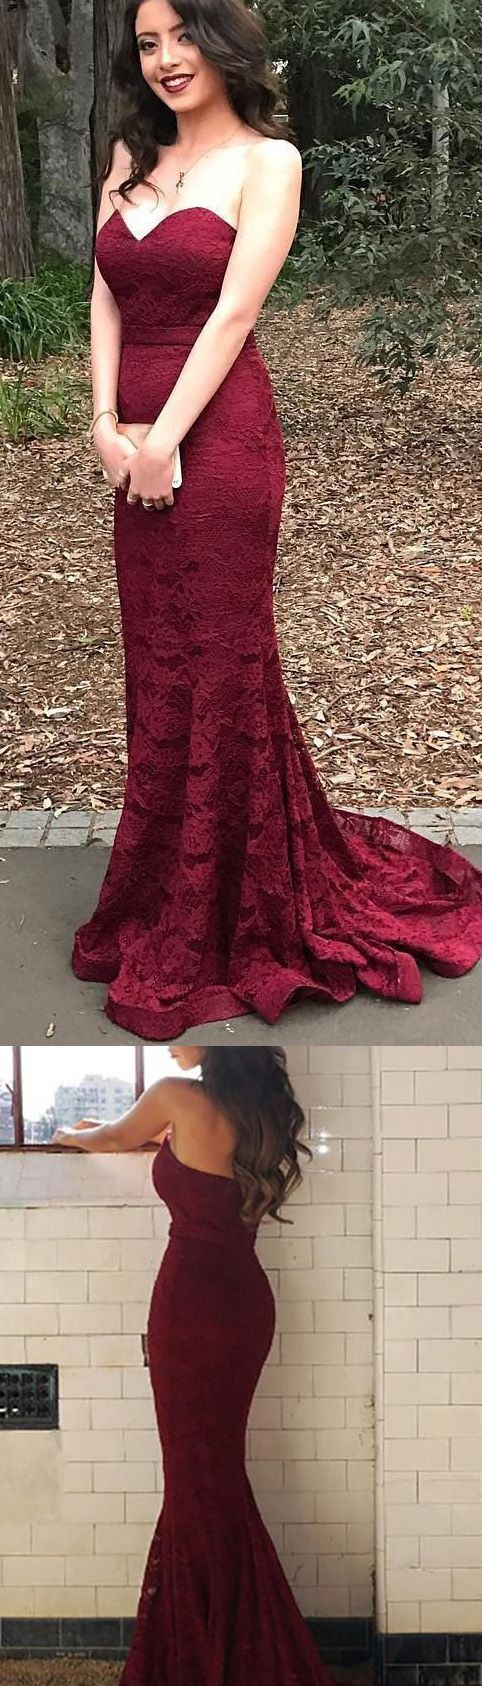 Bridesmaid Dresses Online, Lace Bridesmaid Dresses Short, Cheap Bridesmaid Dresses, Online Bridesmaid Dresses, Bridesmaid Dresses Cheap, Lace Bridesmaid Dresses, Cheap Dresses Online, Burgundy Bridesmaid Dresses, Short Bridesmaid Dresses, Mermaid/Trumpet Evening Dresses, Short Burgundy Evening Dresses With Lace Sweep Train Sweetheart Sale Online